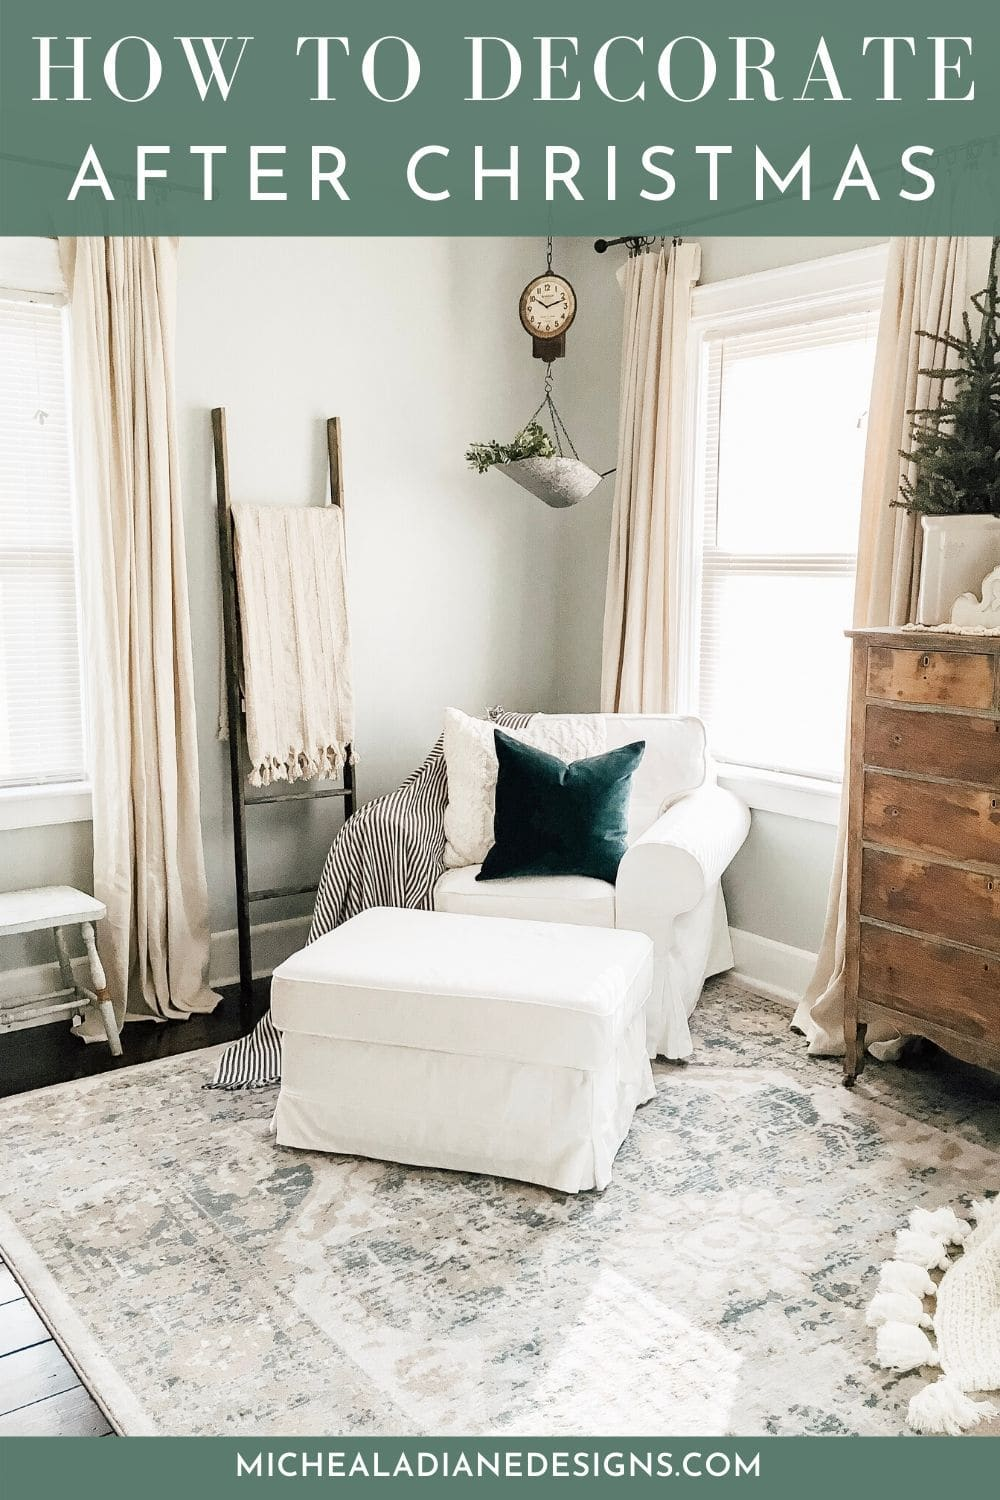 How to Decorate After Christmas